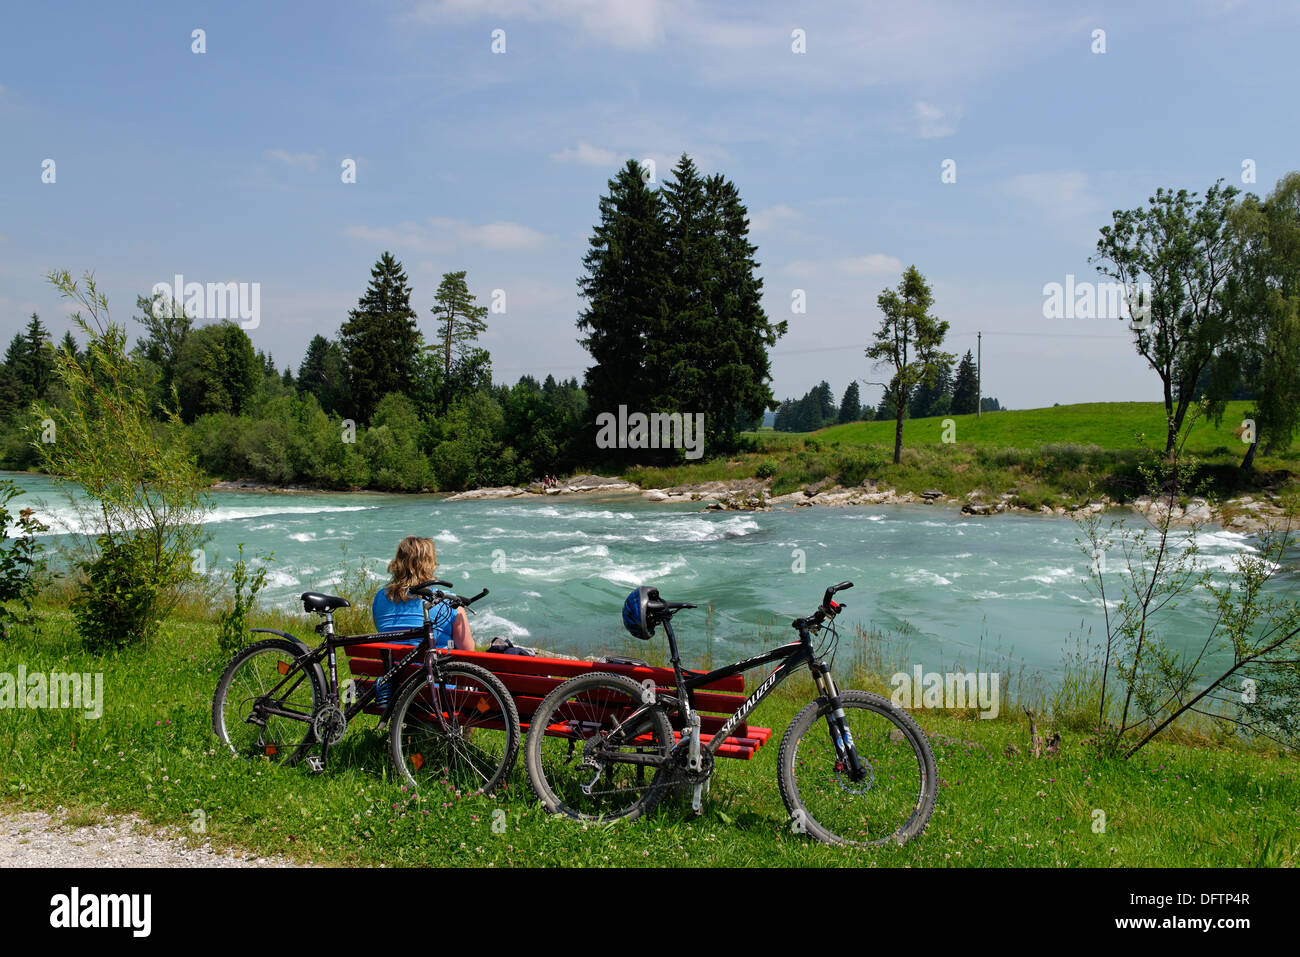 Cyclists during a break at the Lech river, Way of St James, Lechbruck am See, Swabia, Bavaria, Germany - Stock Image